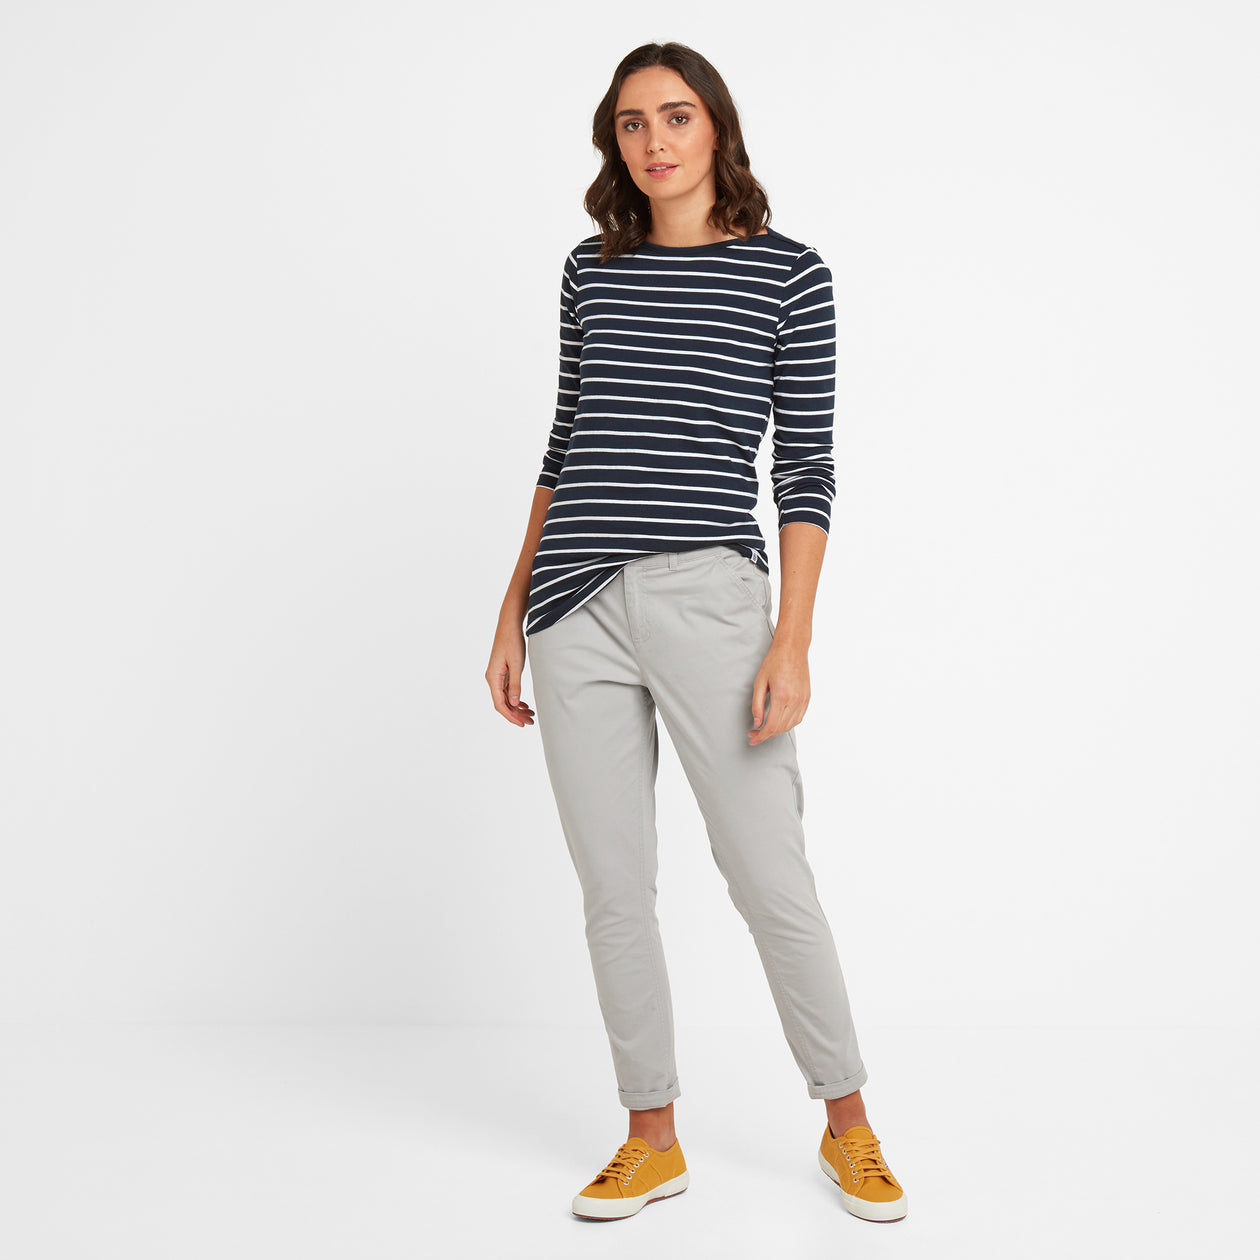 Pickering Womens Trousers Long - Pebble image 4